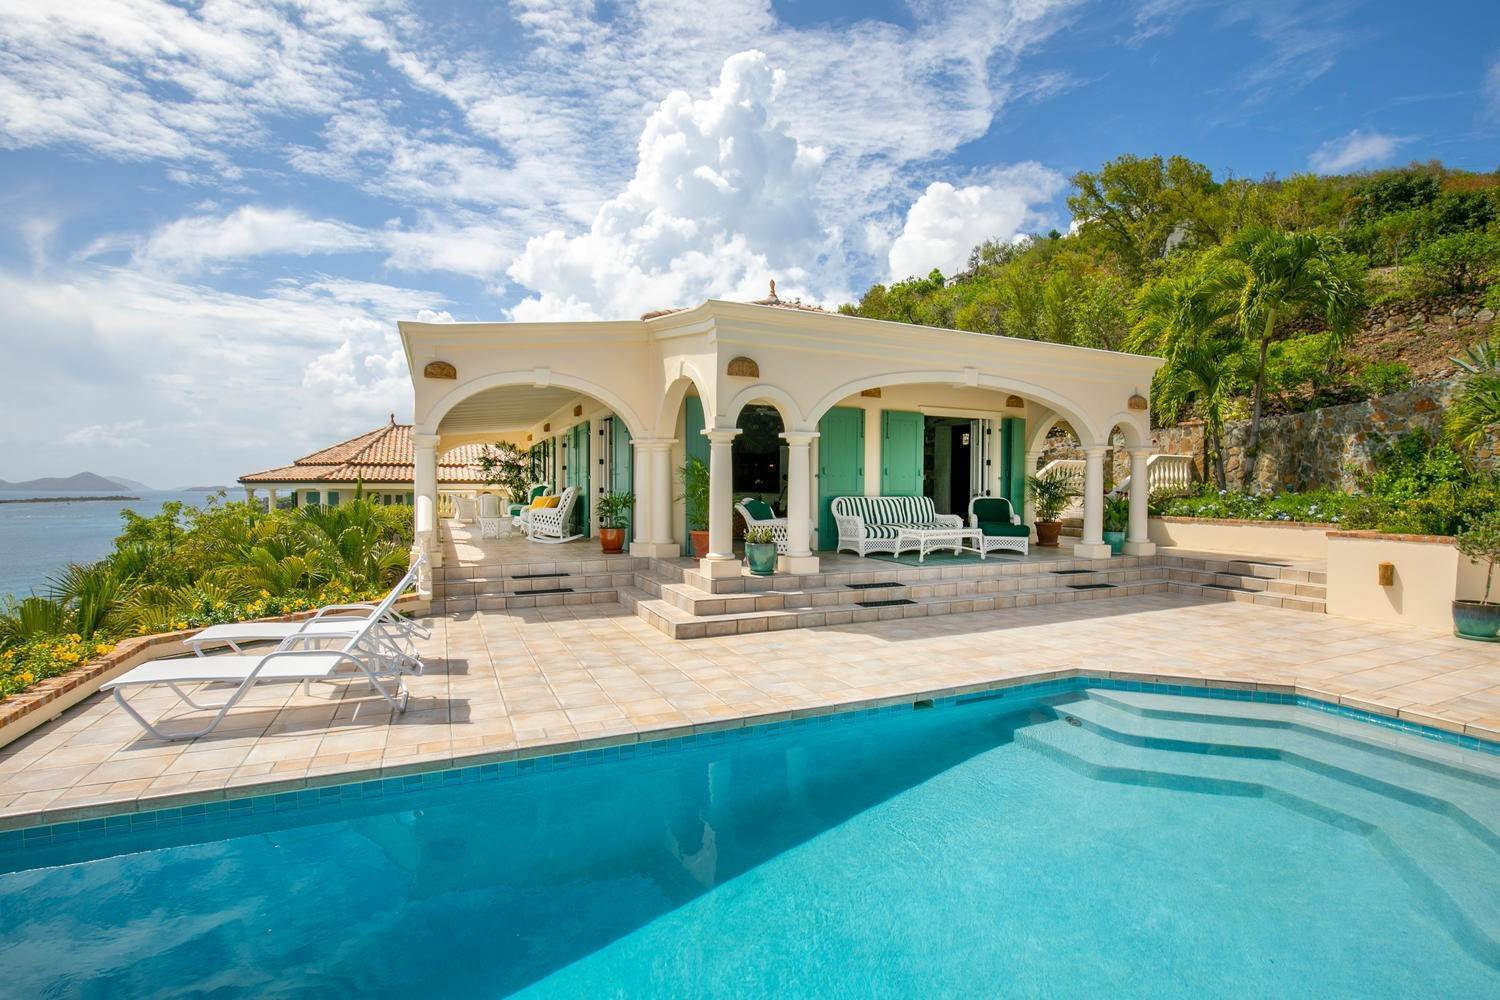 3. Single Family Home per Vendita alle ore 9-4 Con. Contant Cruz Bay St John, Virgin Islands,00830 Isole Vergini Americane